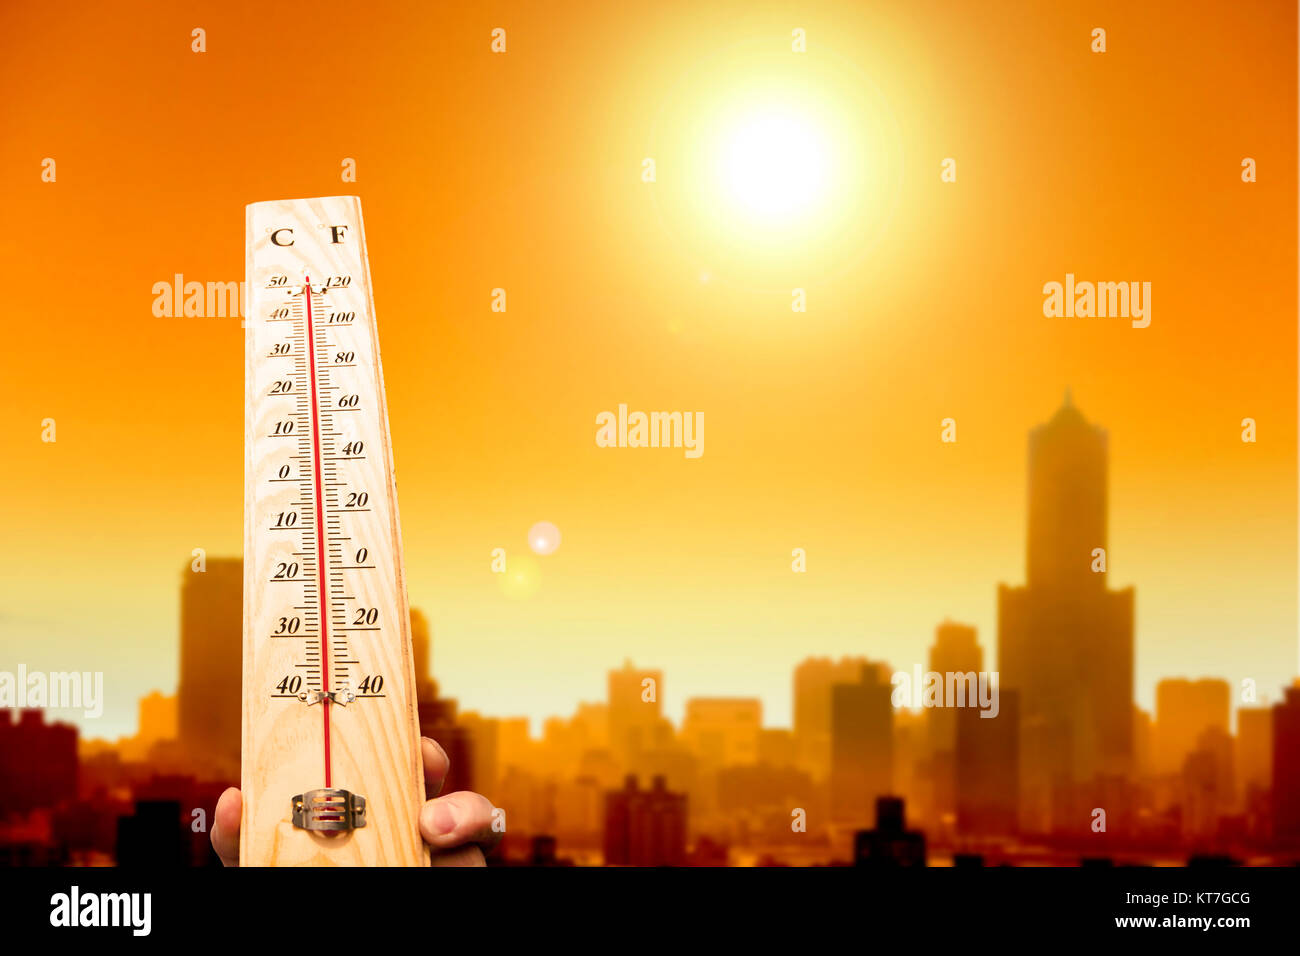 heat wave in the city and hand showing thermometer for high temperature - Stock Image